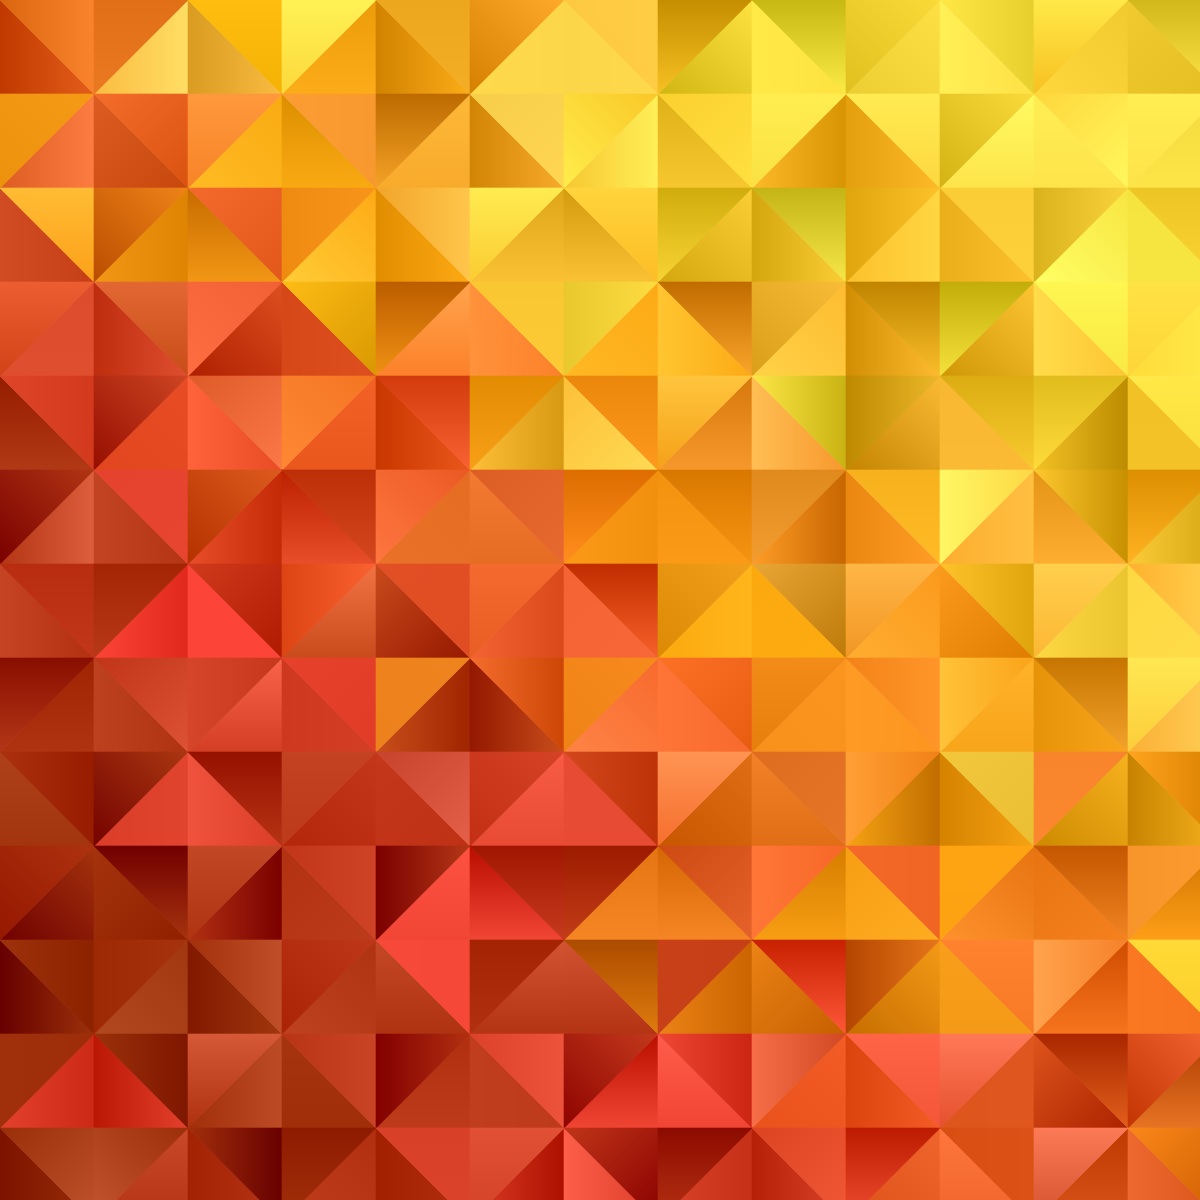 halftonepro polygons vector low poly pattern generator